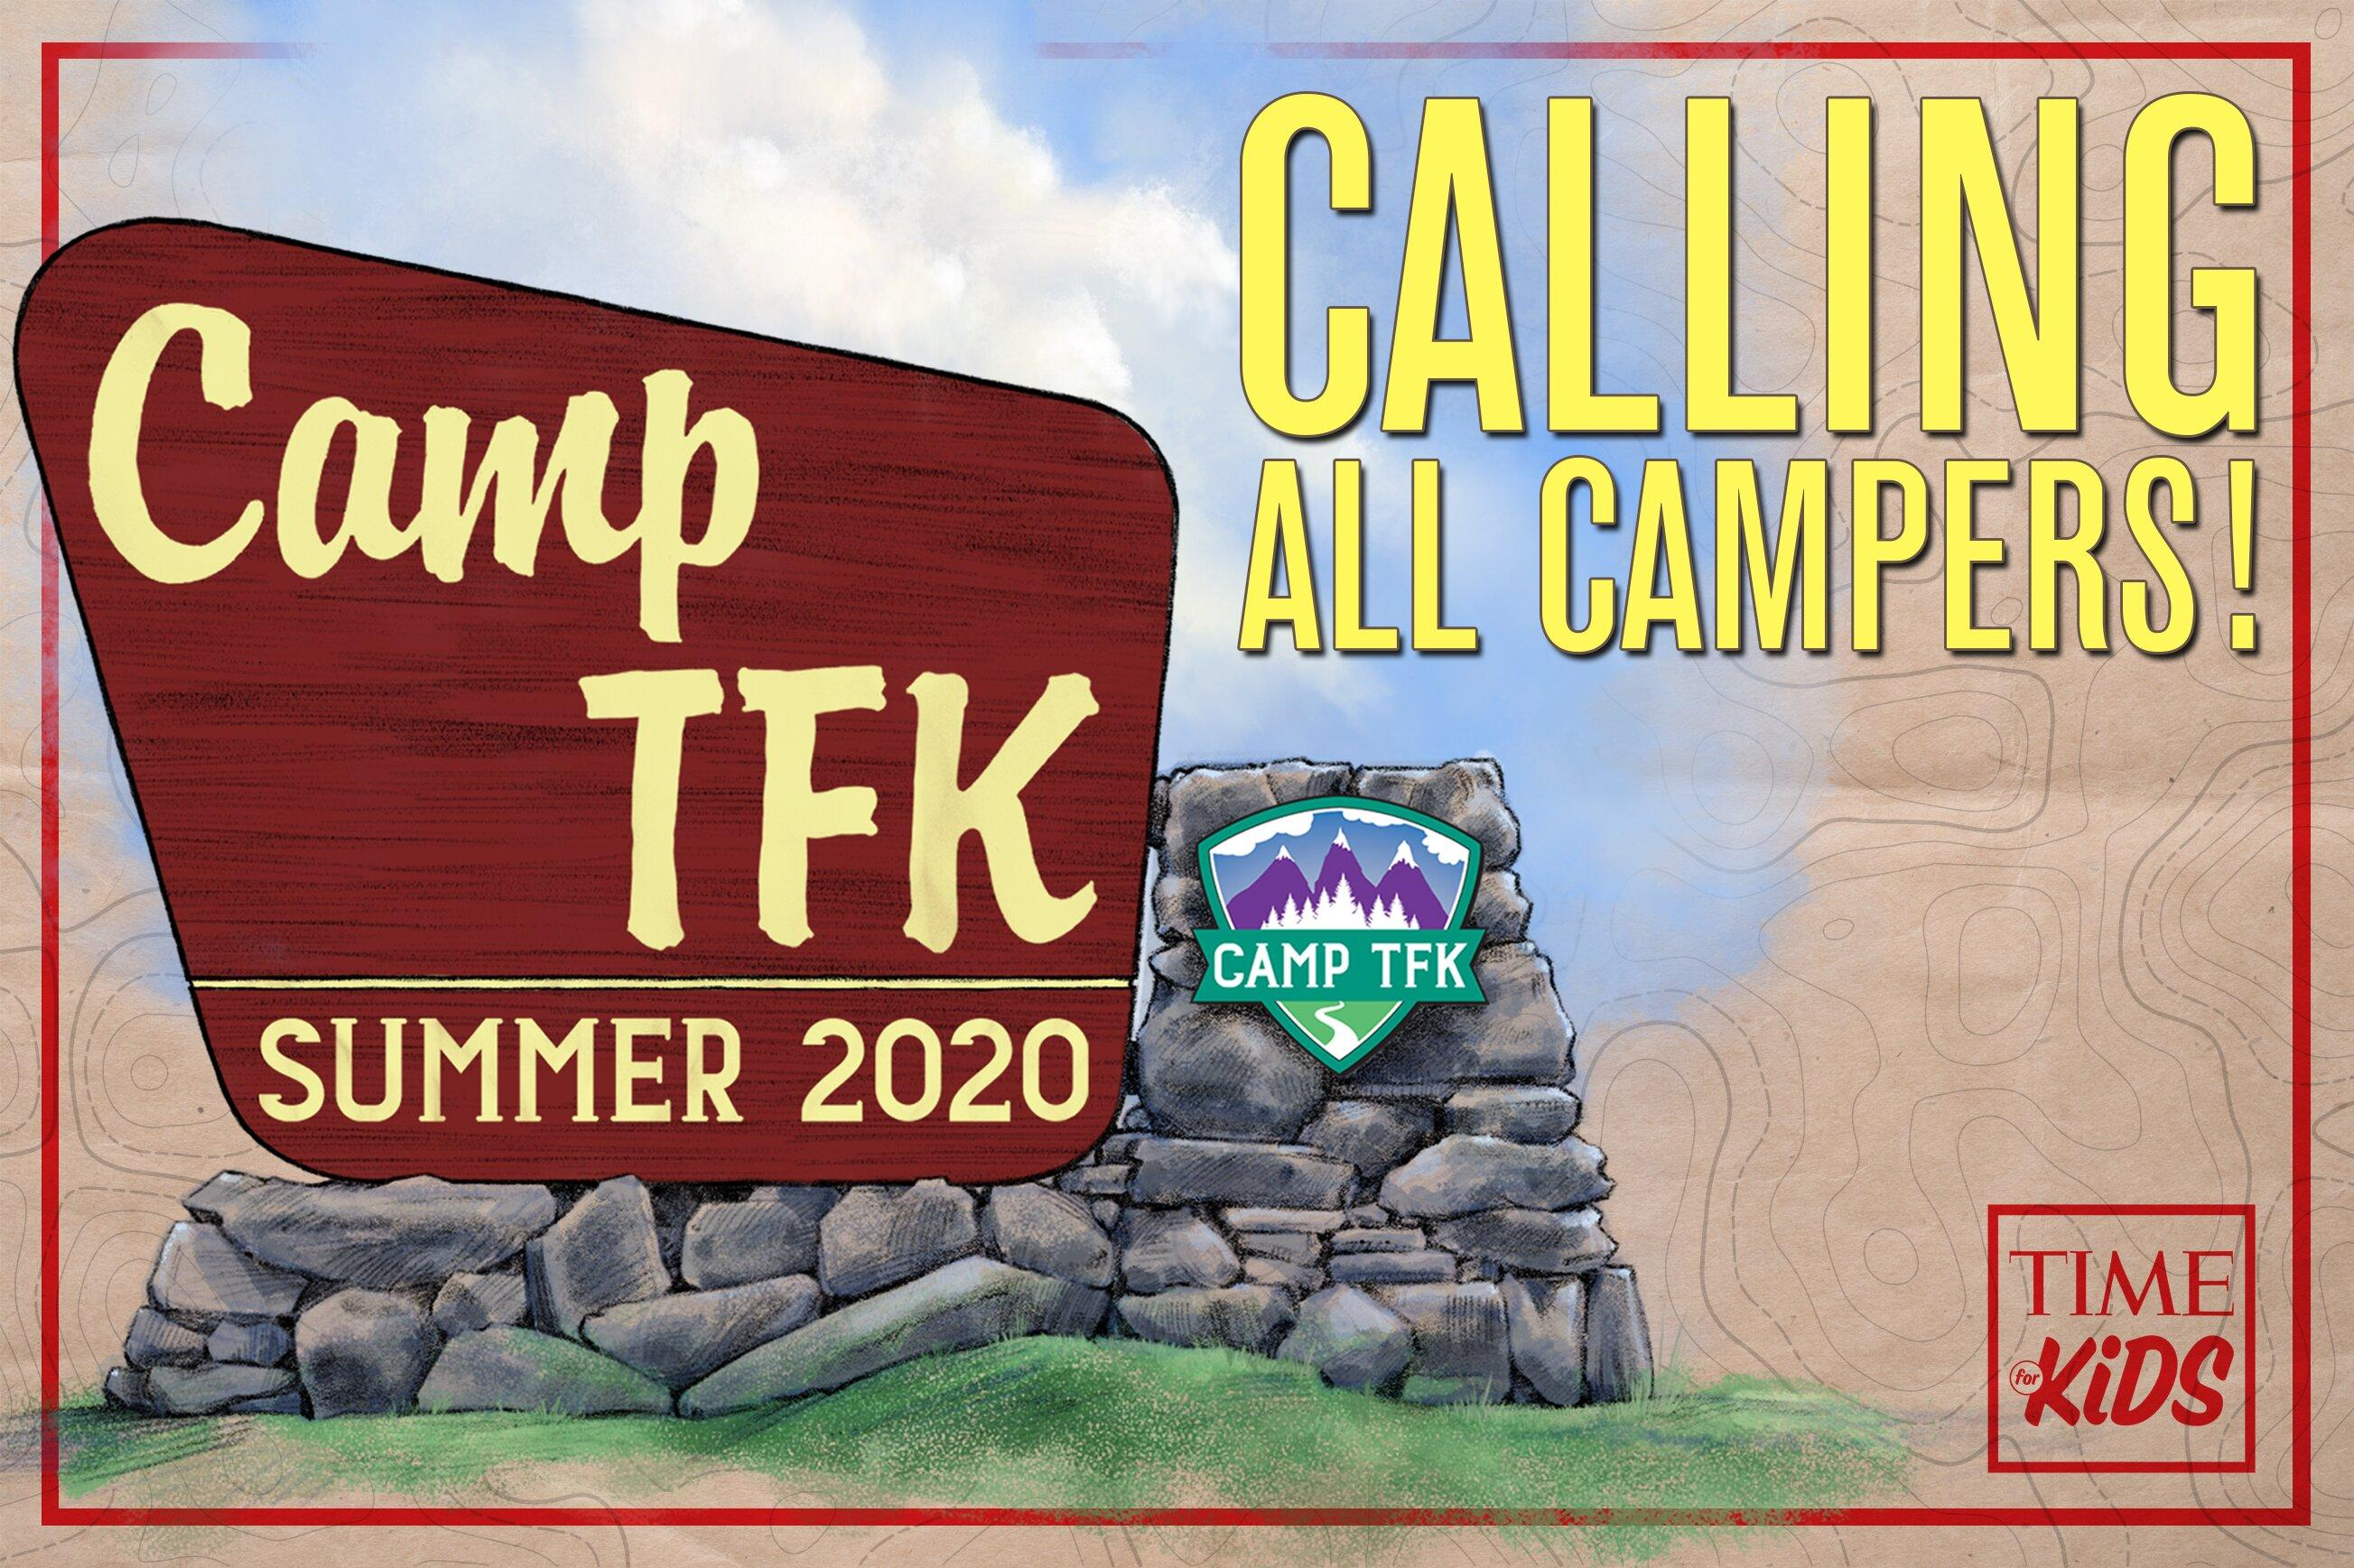 TIME for Kids Launches Camp TFK, a Free Newsletter of Daily Activities to Keep Kids Engaged with Trusted and Fun Educational Content this Summer